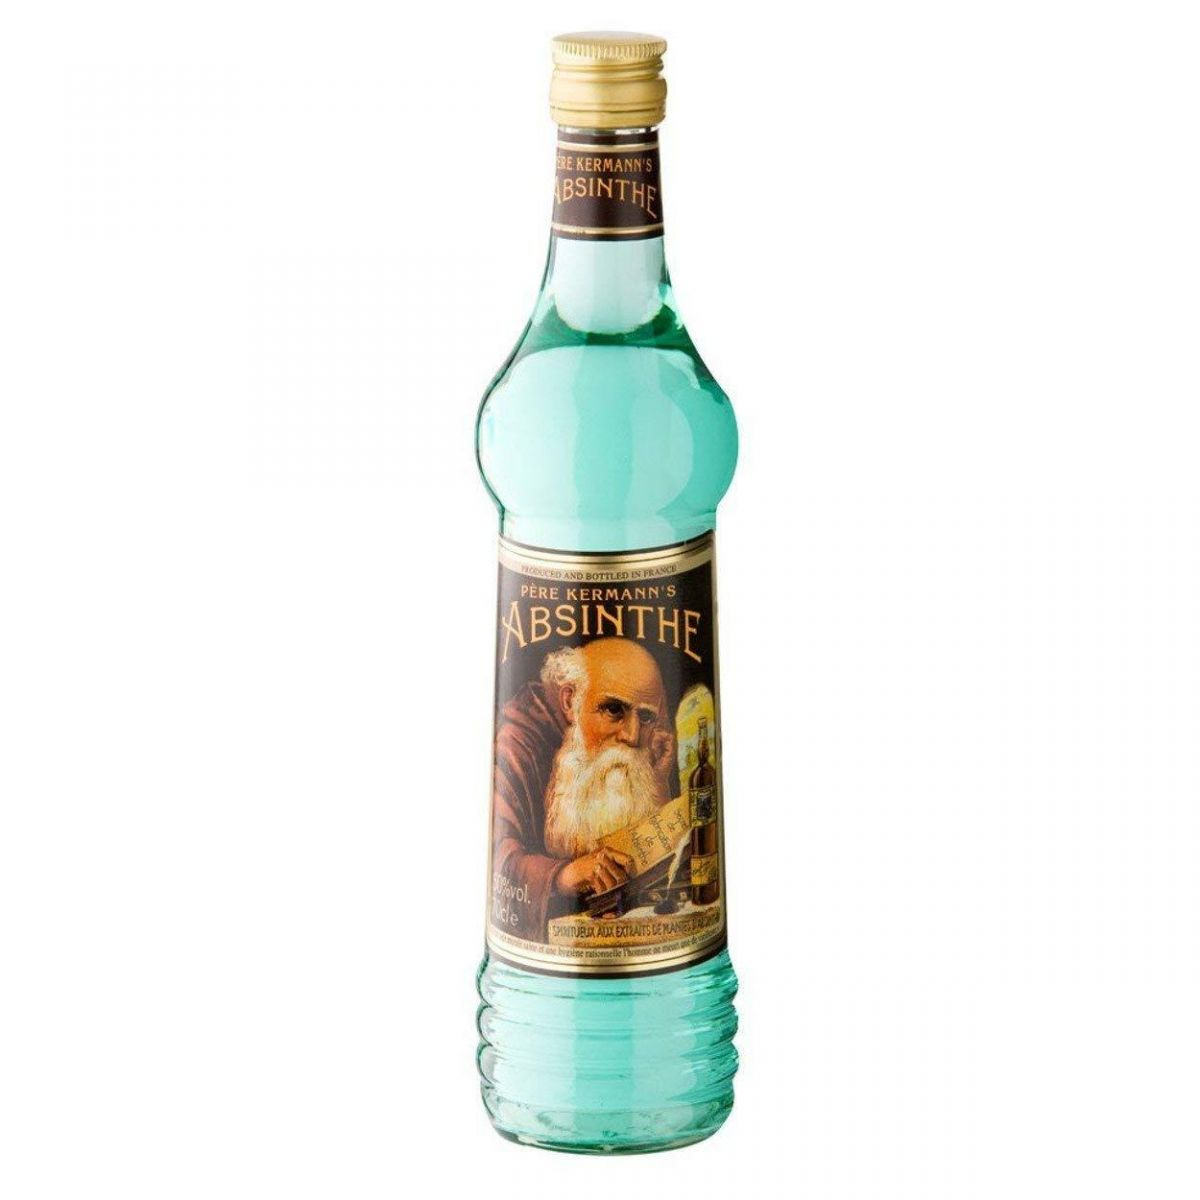 LICOR ABSINTO PERE KERMANNS 700ML